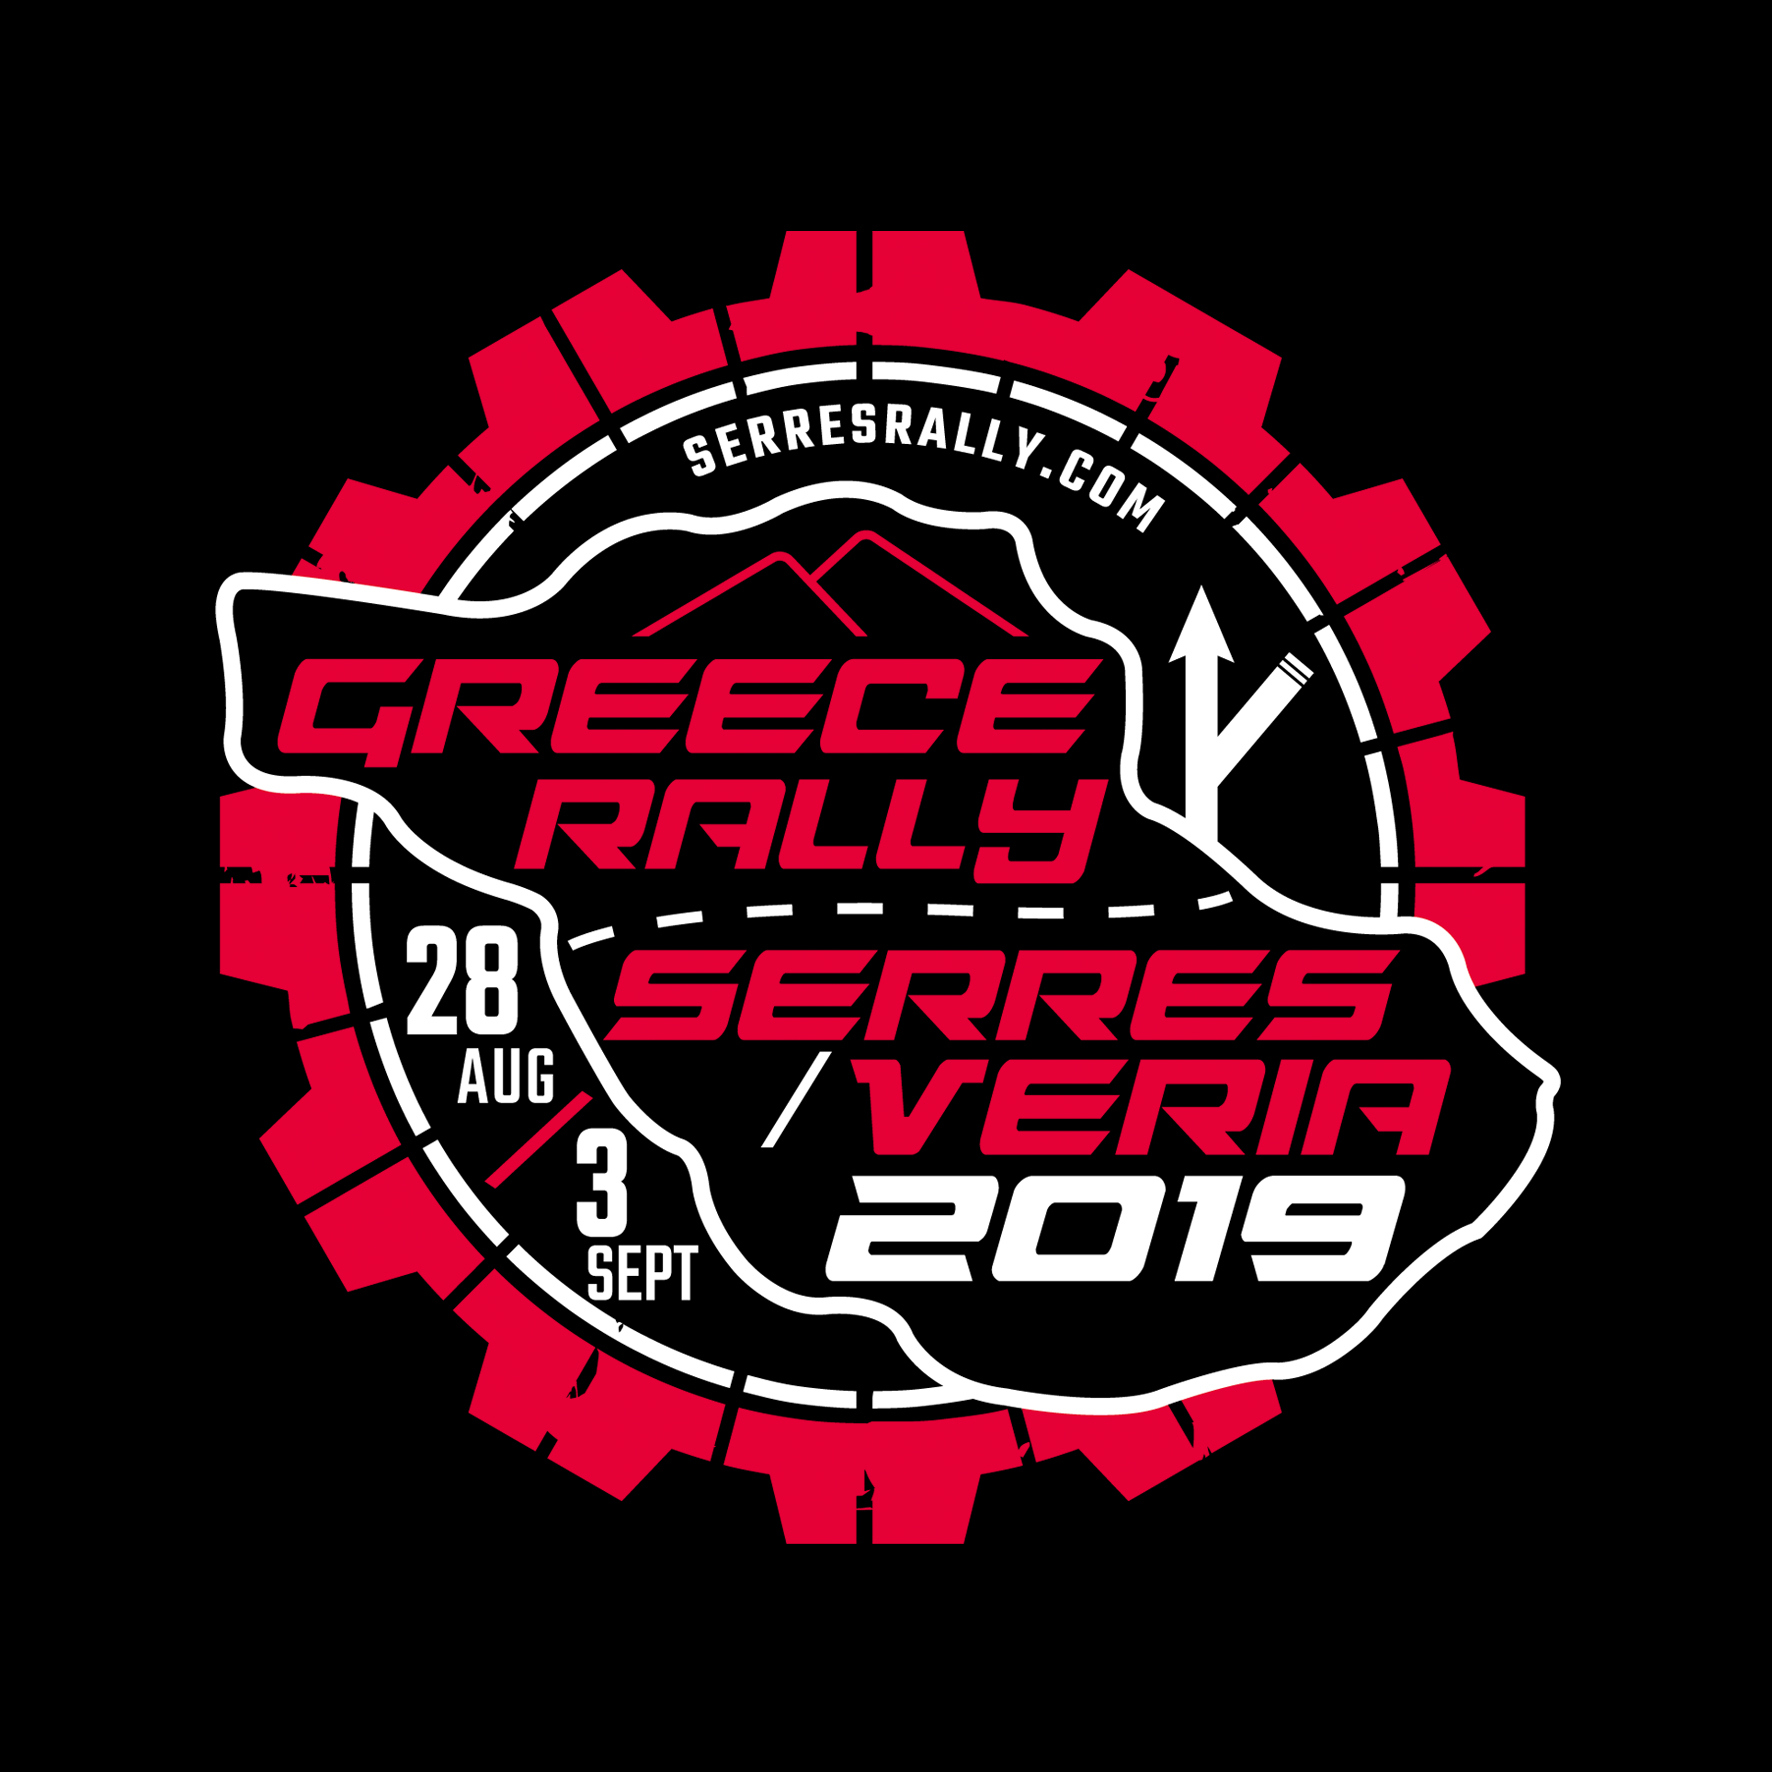 logo GR Rally Serres Veria FACEBOOK profile